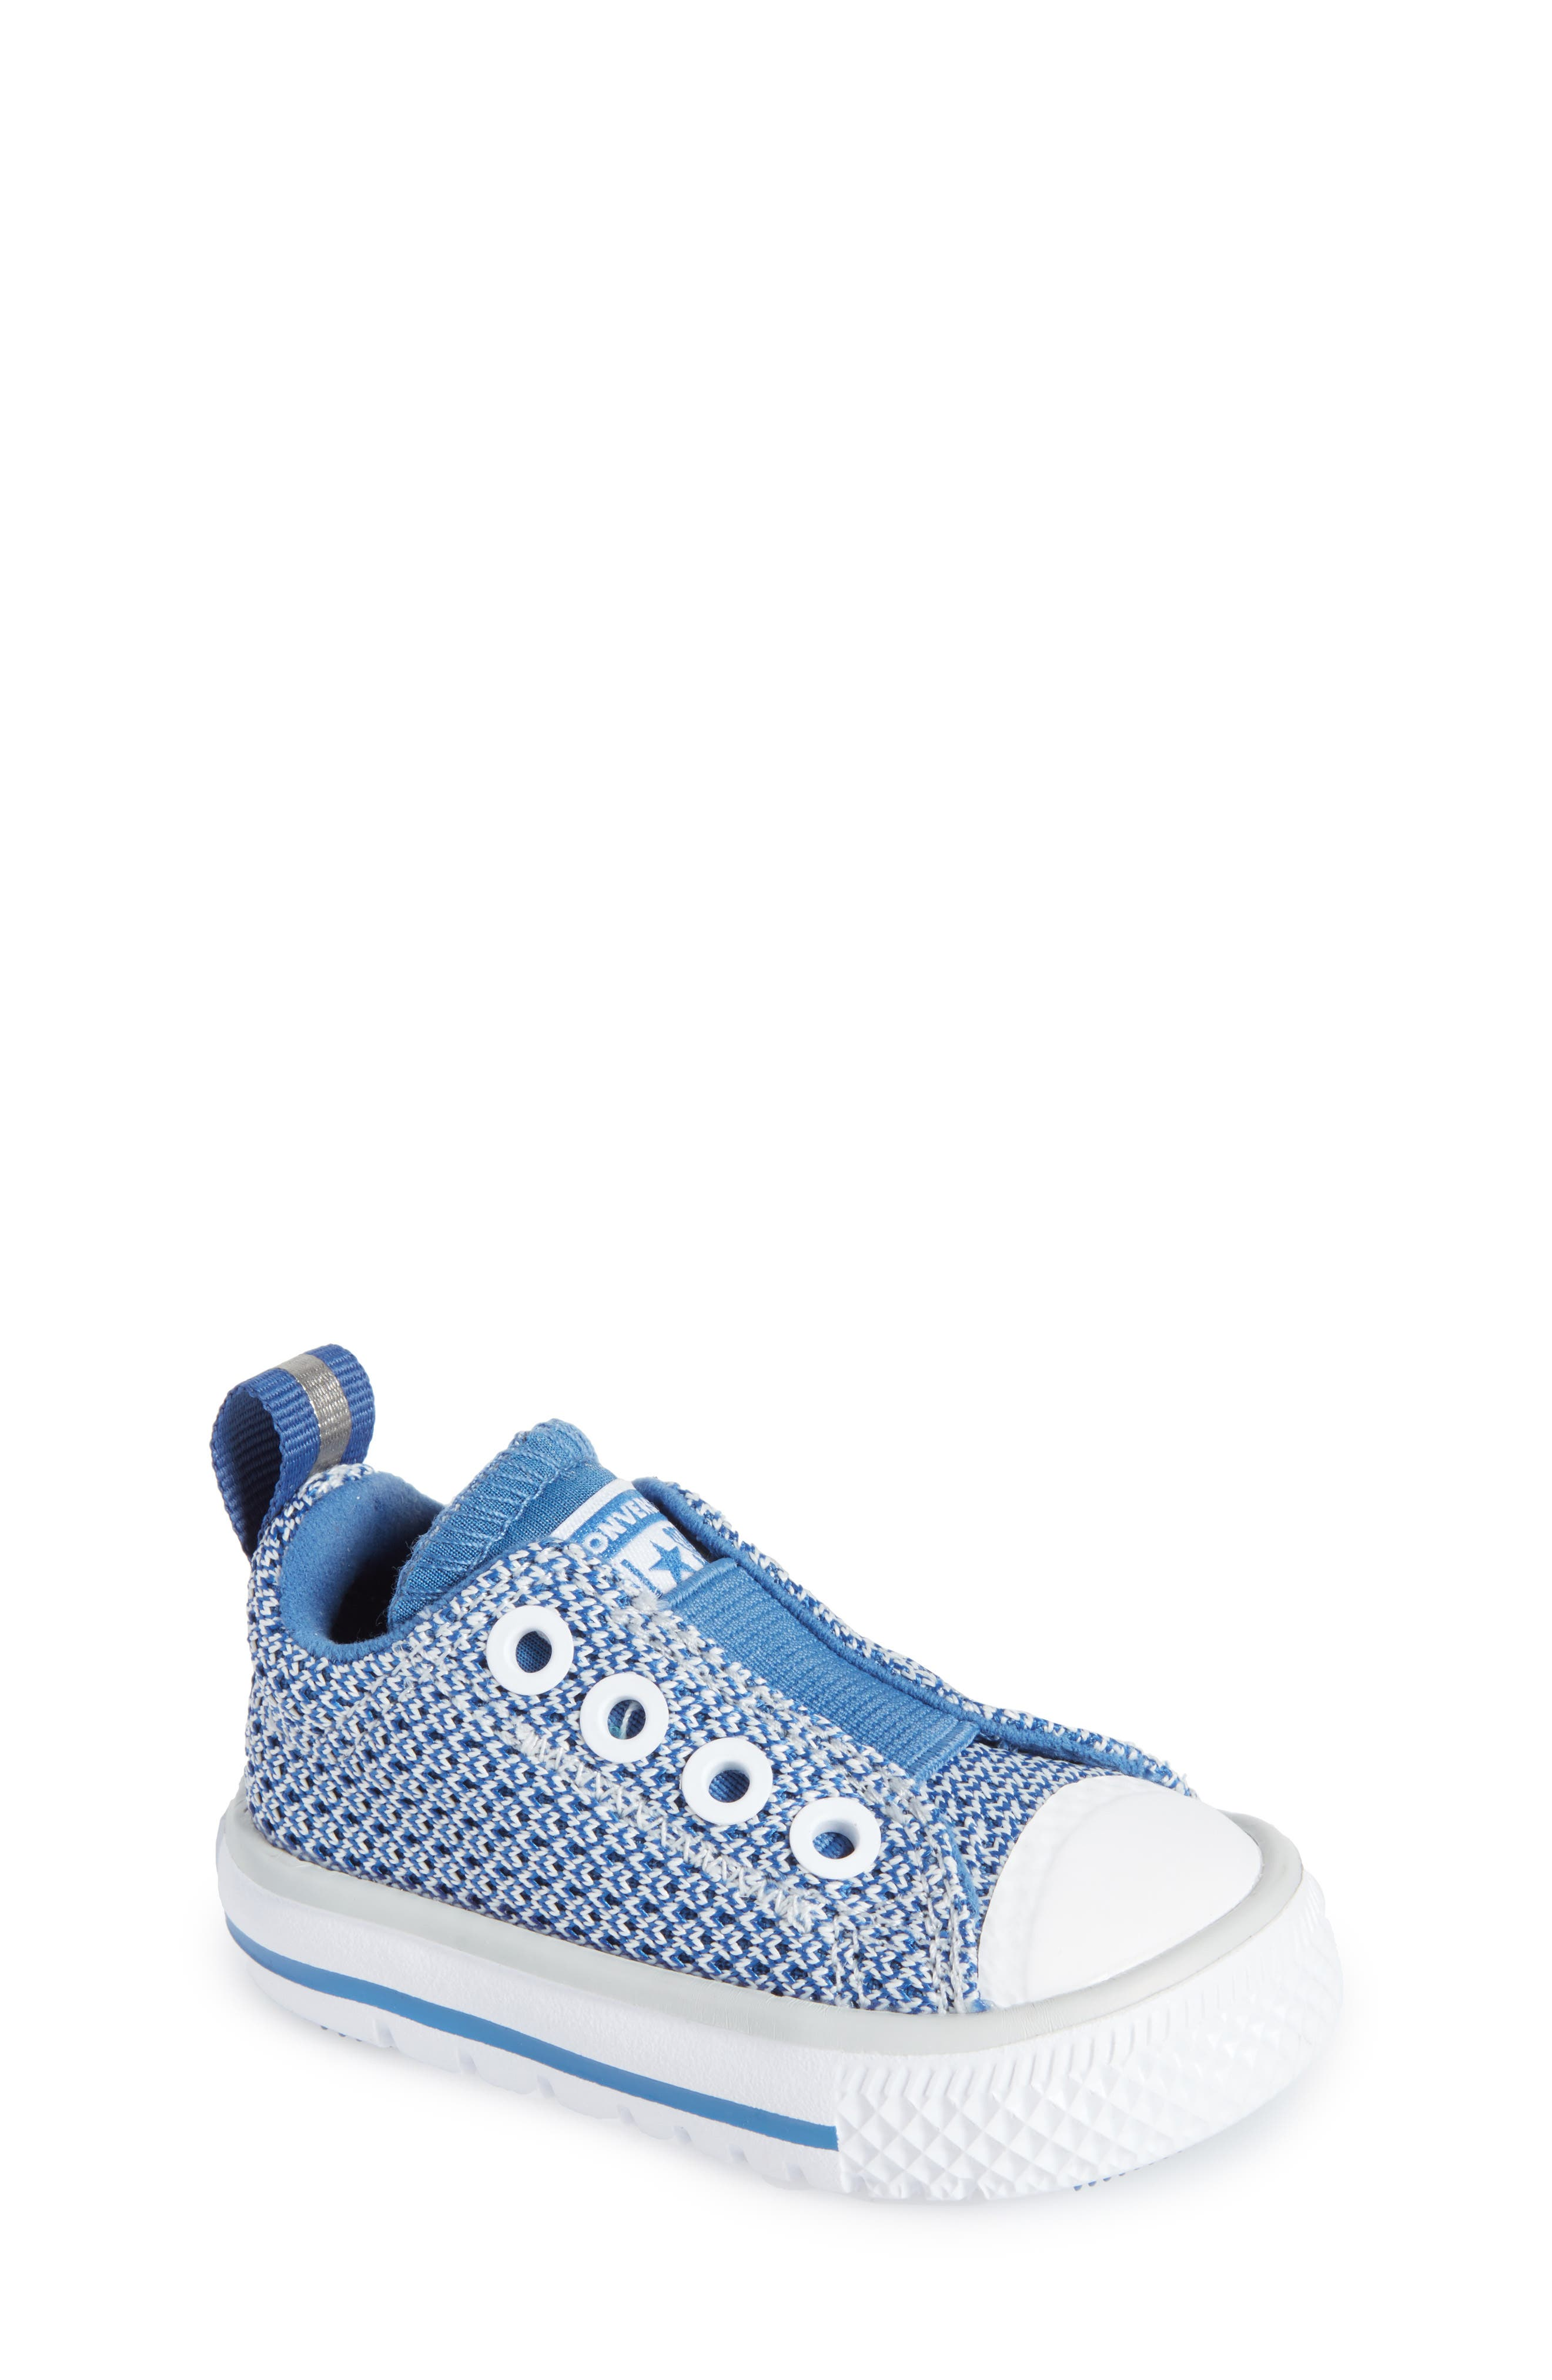 Chuck Taylor<sup>®</sup> All Star<sup>®</sup> Hyper Lite Slip-On Sneaker,                             Main thumbnail 1, color,                             020